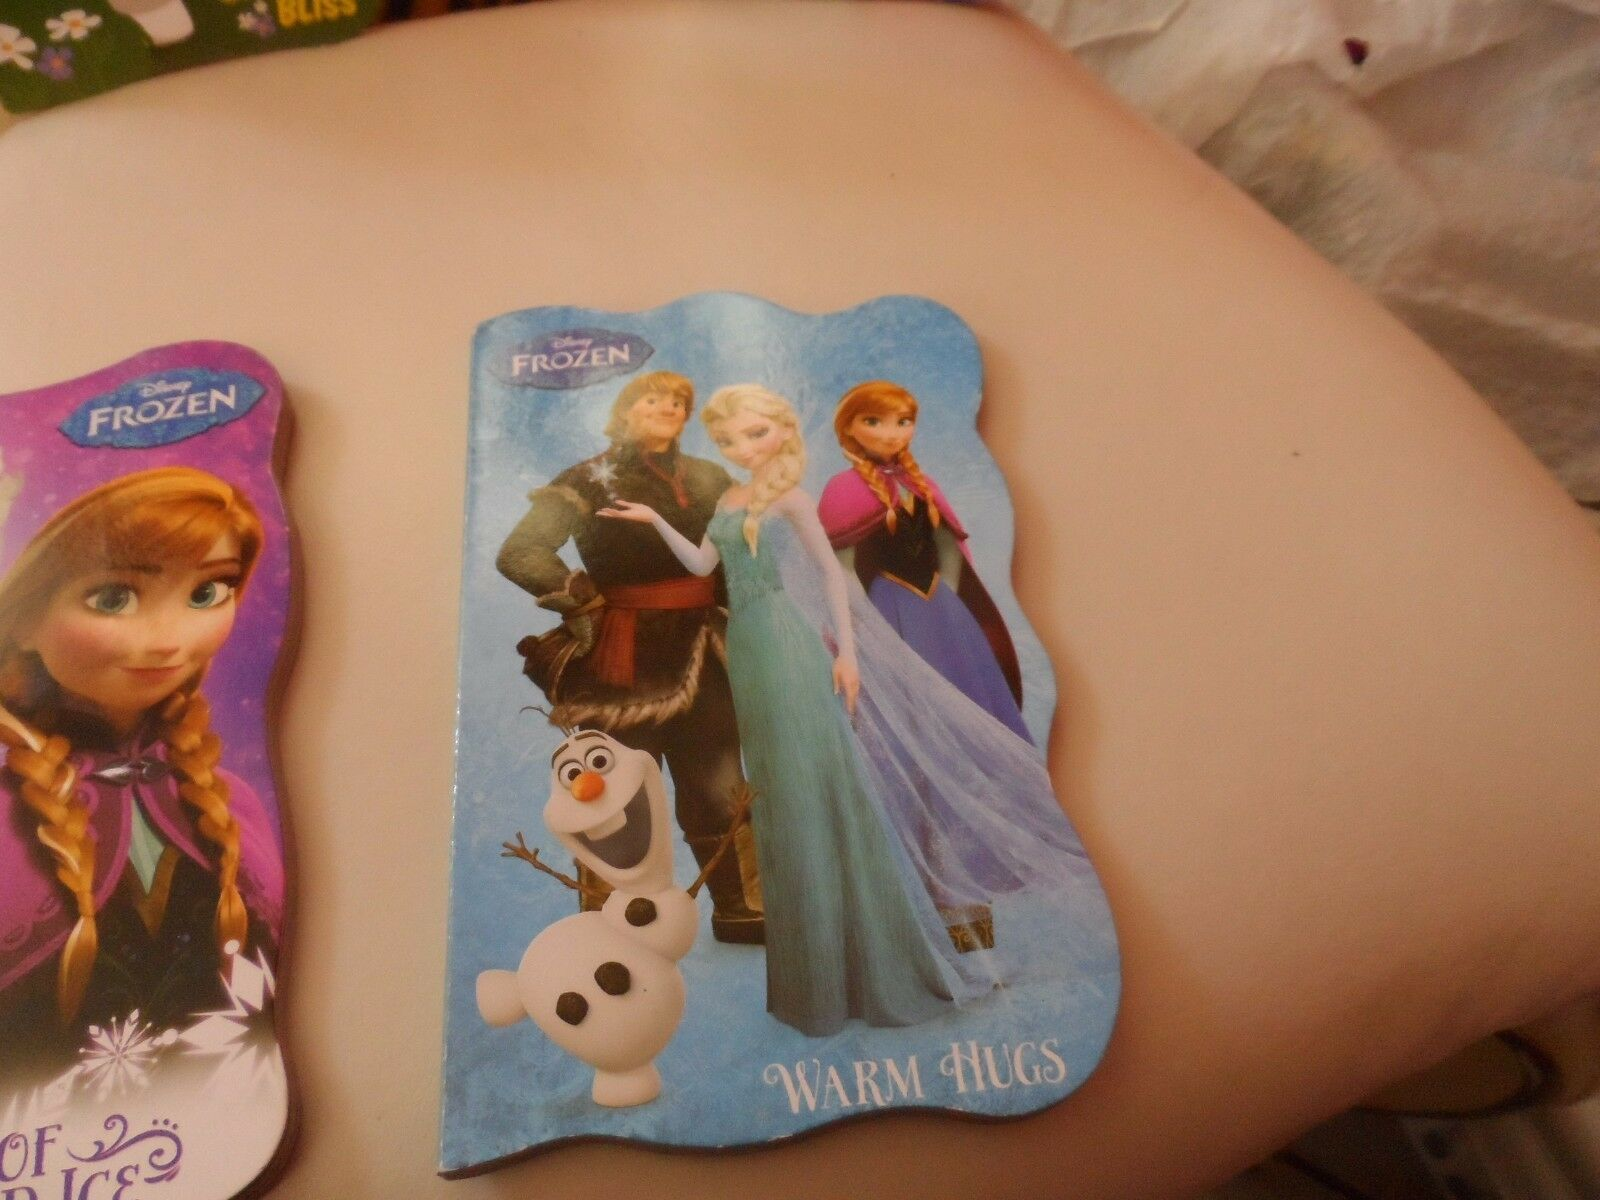 Set of 4 Disney Frozen Board Books